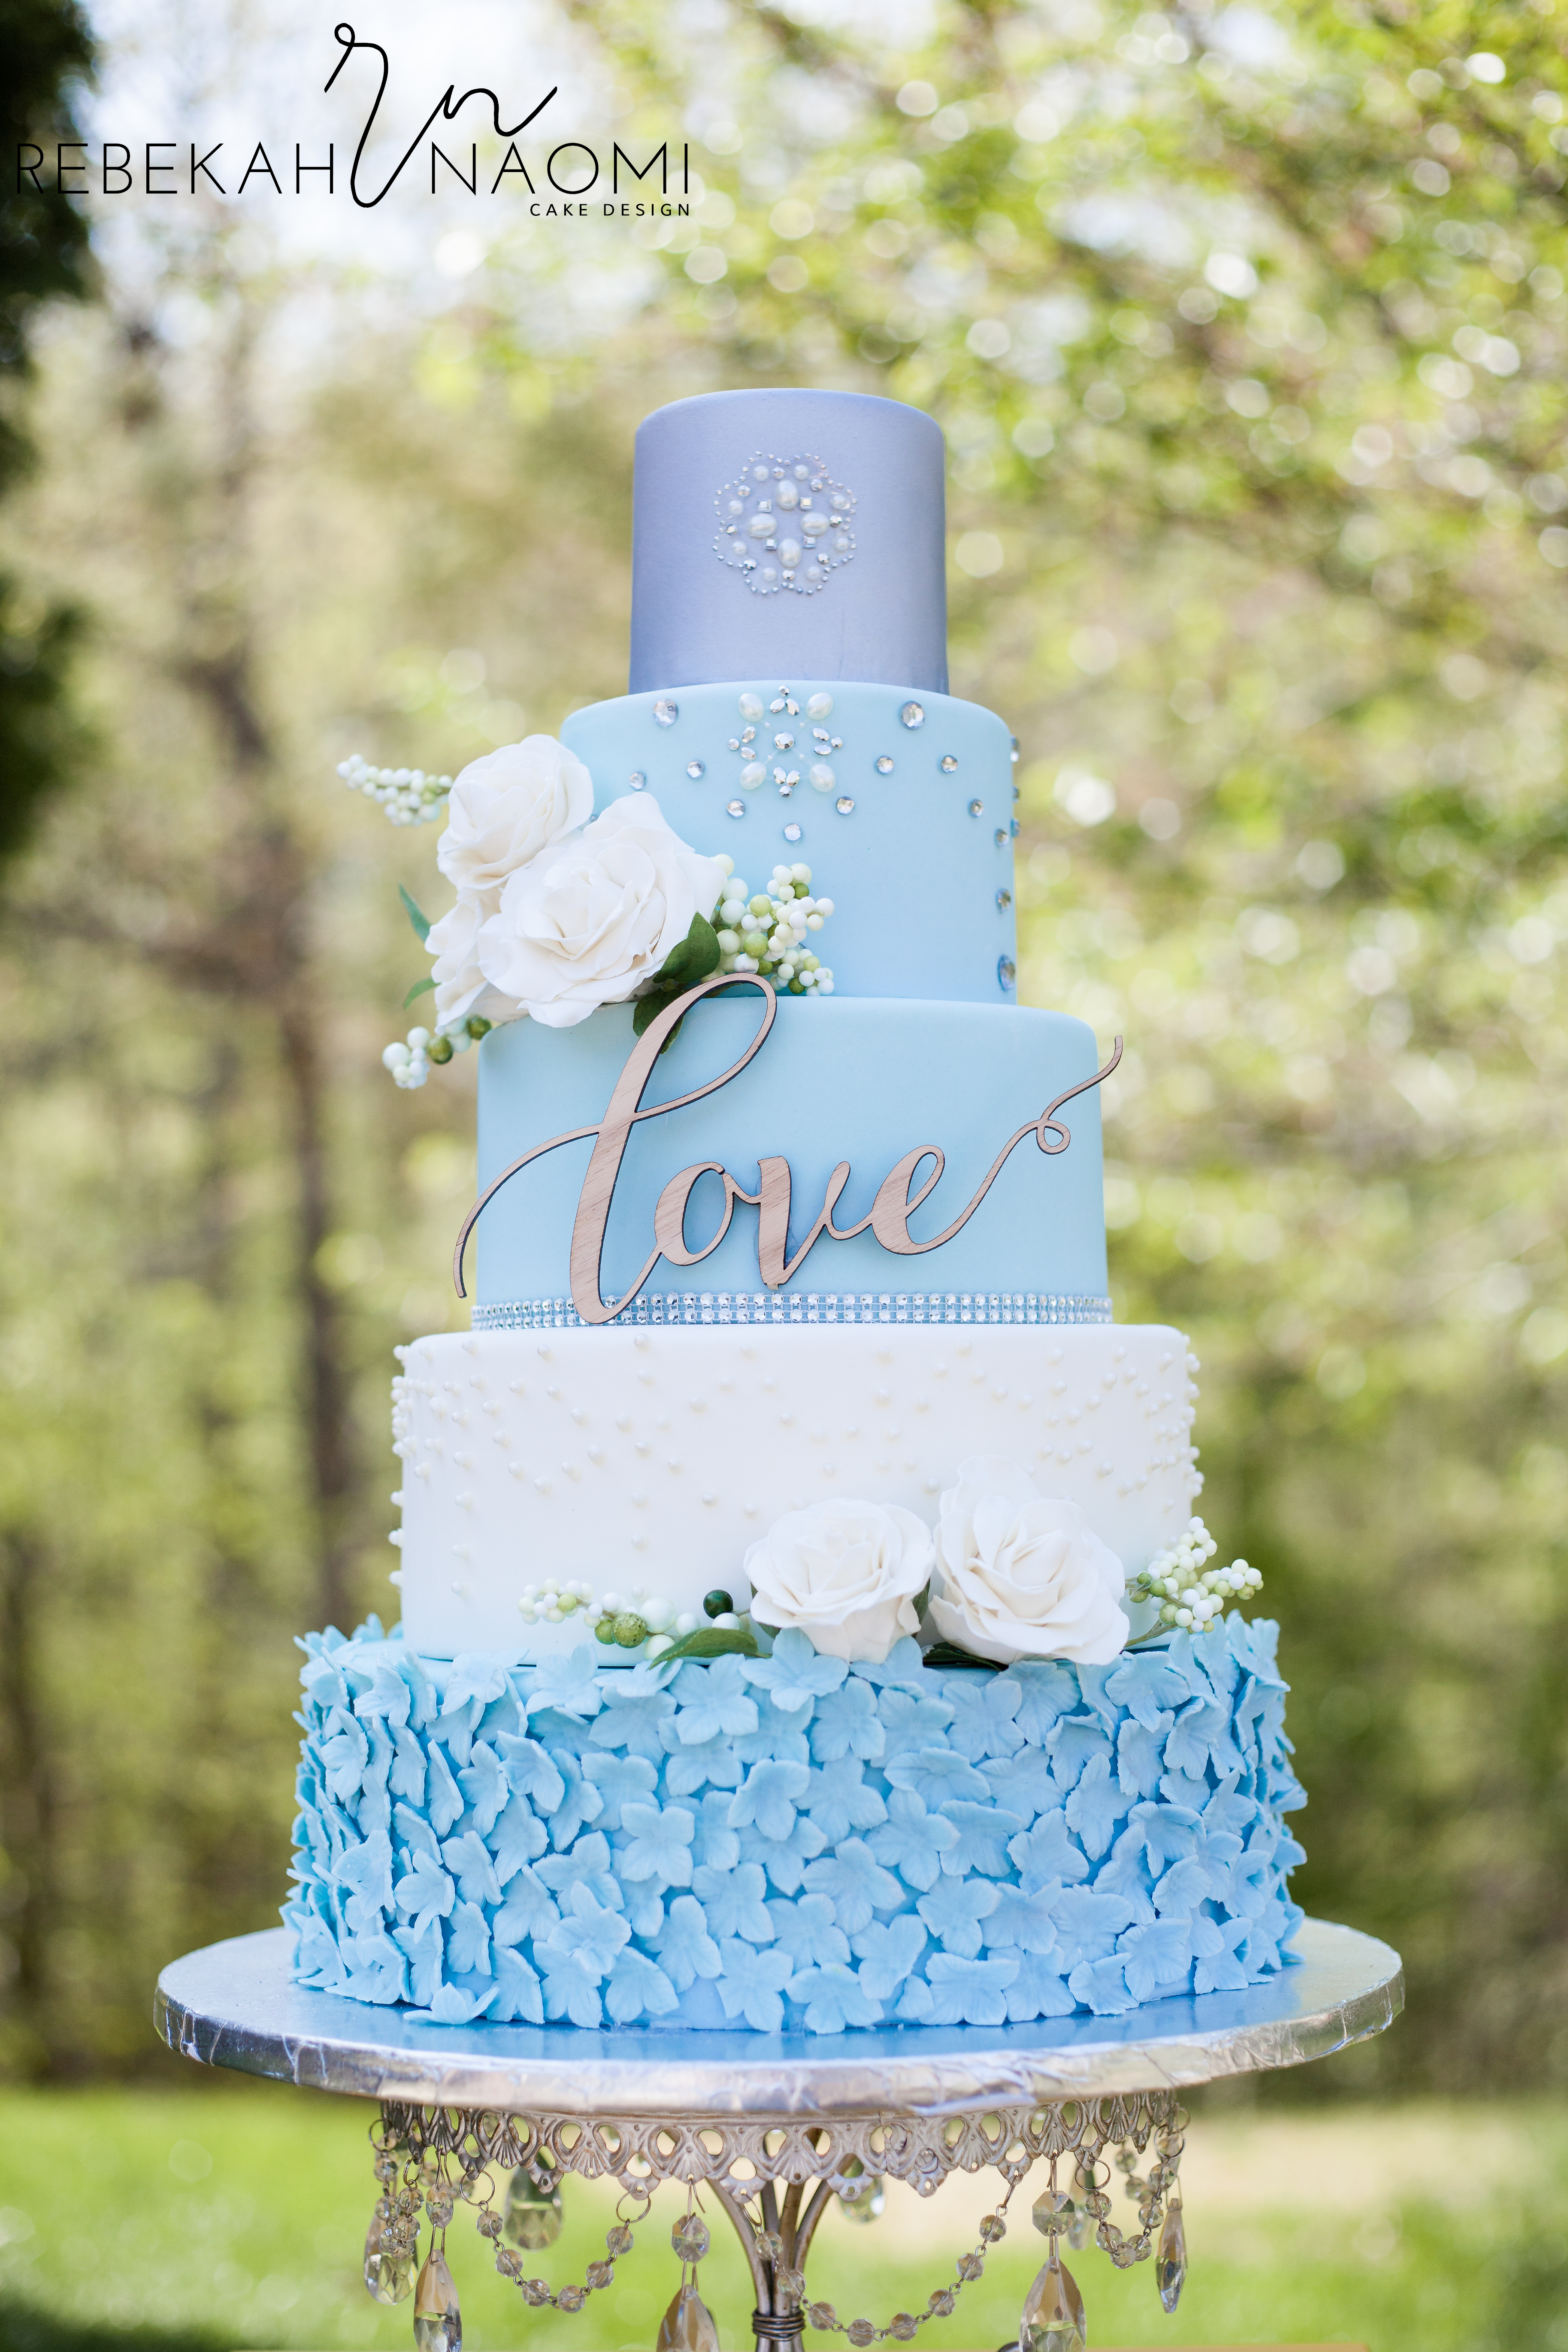 Baby Blue and white ruffle wedding cake